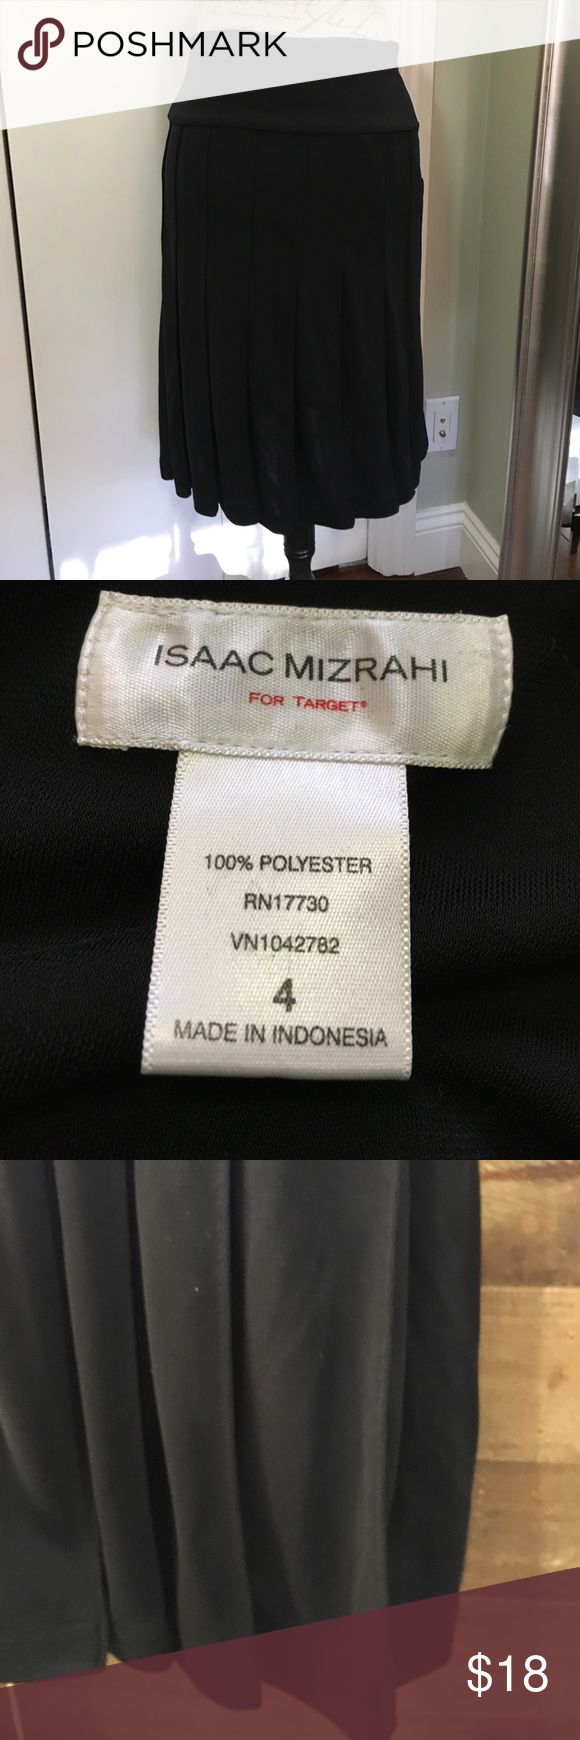 Isaac Mizrahi pleated skirt Beautiful pleated skirt with wide waistband. Great piece for the office or for going out on a date! Only worn once. Isaac Mizrahi Skirts